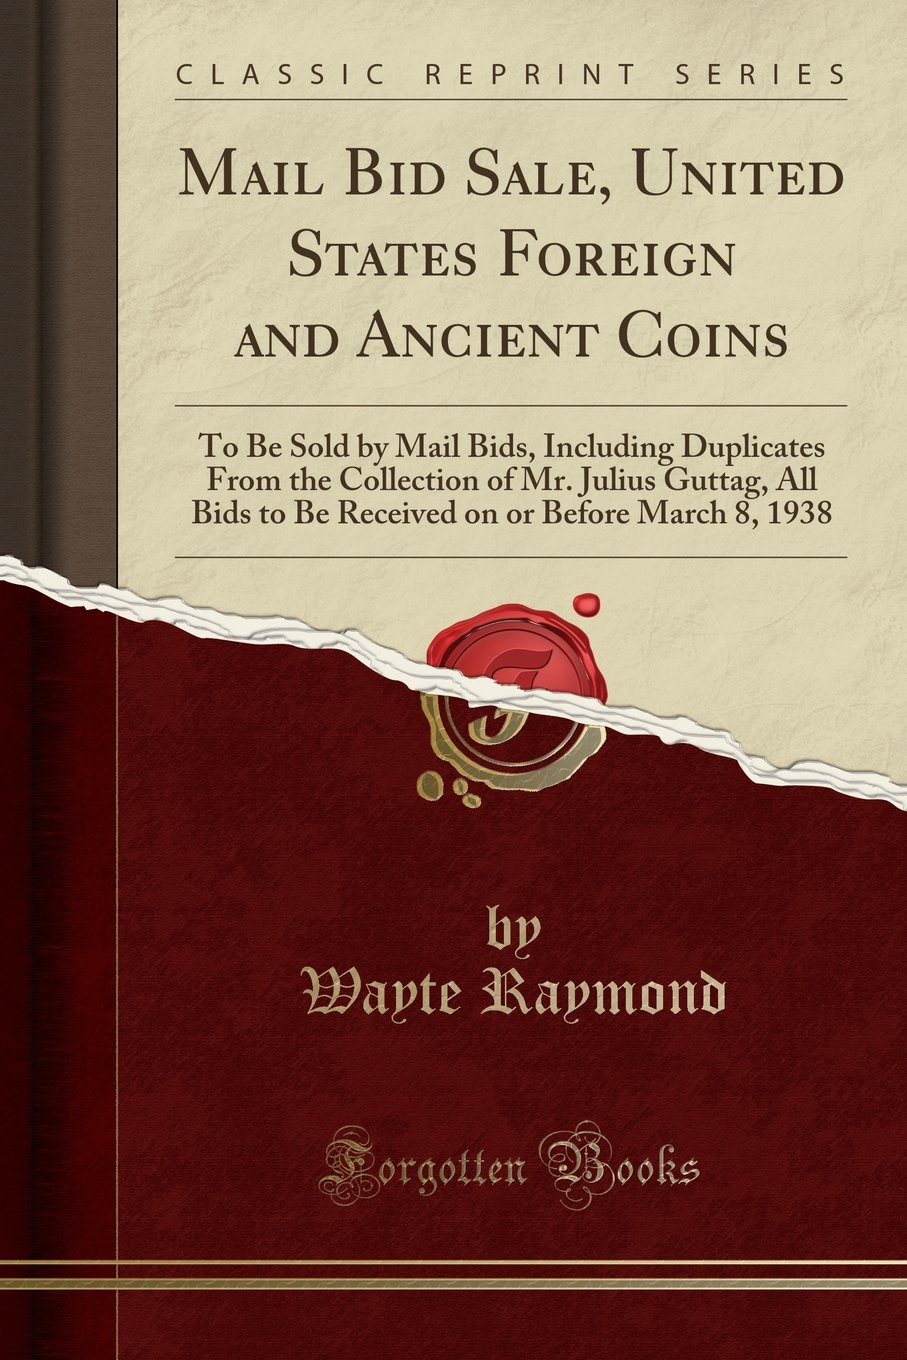 Download Mail Bid Sale, United States Foreign and Ancient Coins: To Be Sold by Mail Bids, Including Duplicates From the Collection of Mr. Julius Guttag, All ... on or Before March 8, 1938 (Classic Reprint) pdf epub